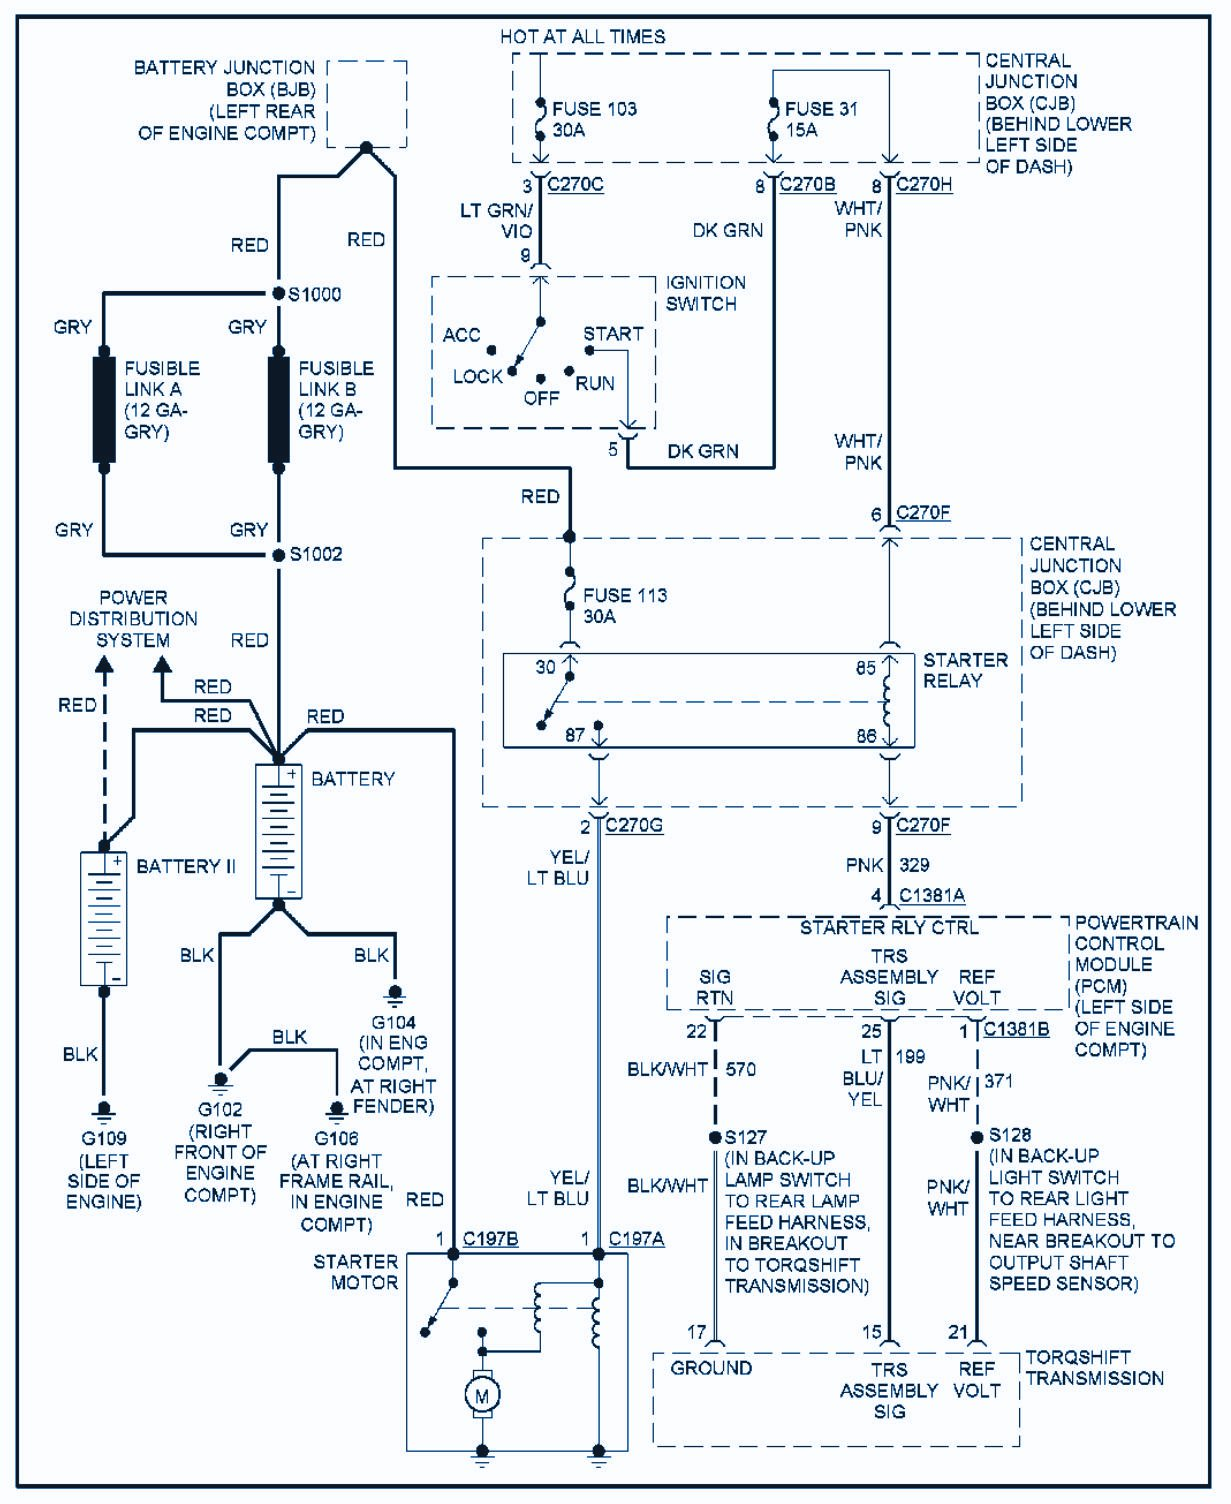 2008 Ford Expedition Wiring Diagram from 3.bp.blogspot.com